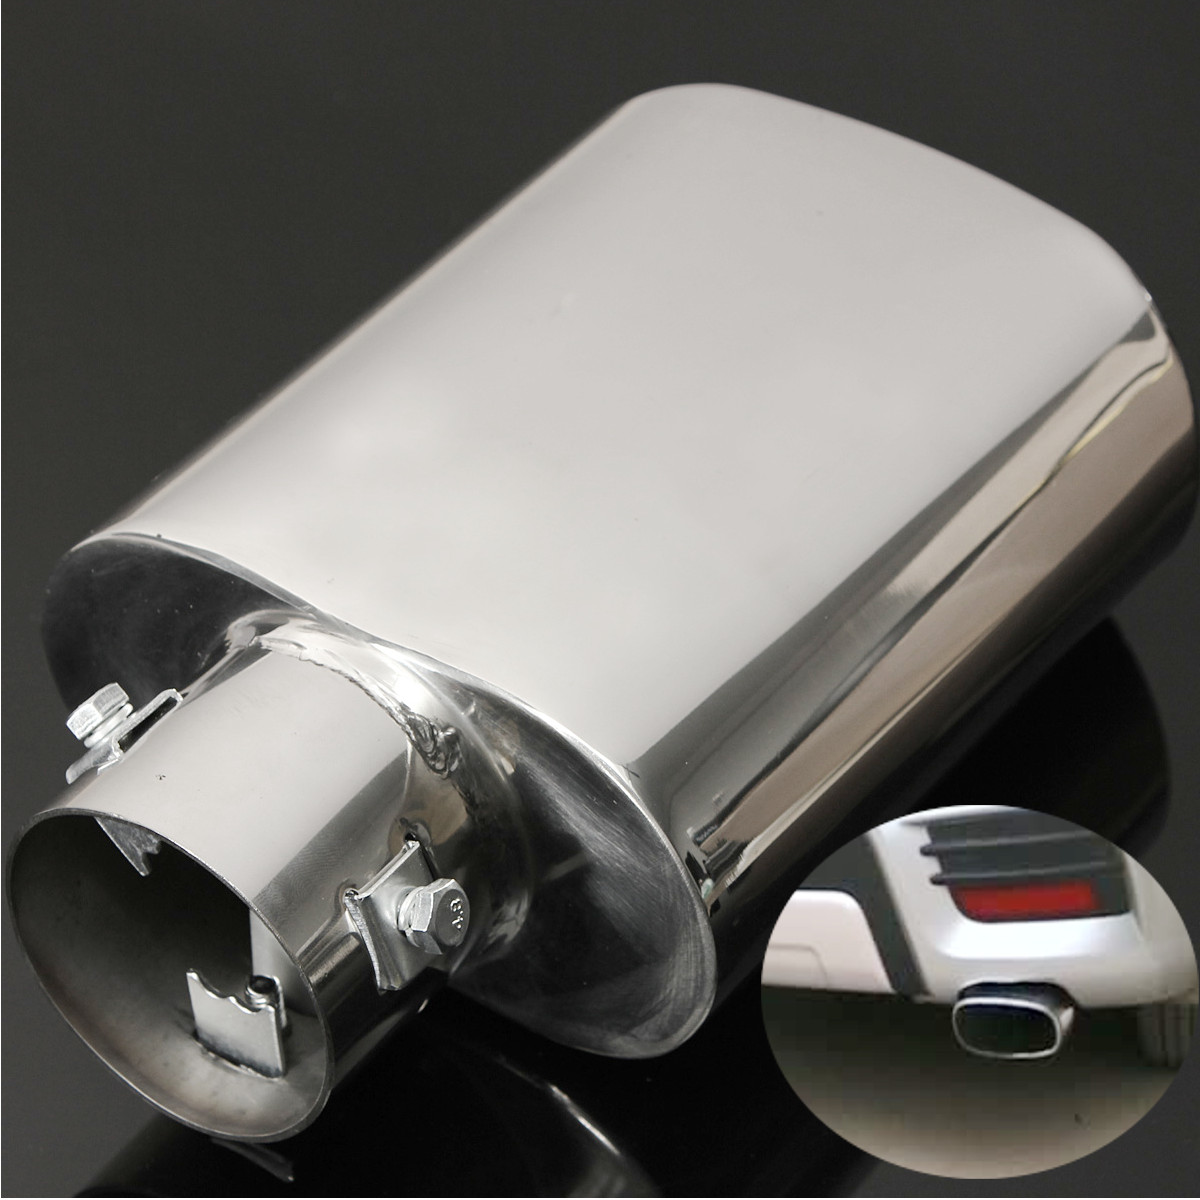 Universal Chrome Exhaust Tail Trim Tip Pipe Muffler Stainless steel Replacement(China (Mainland))